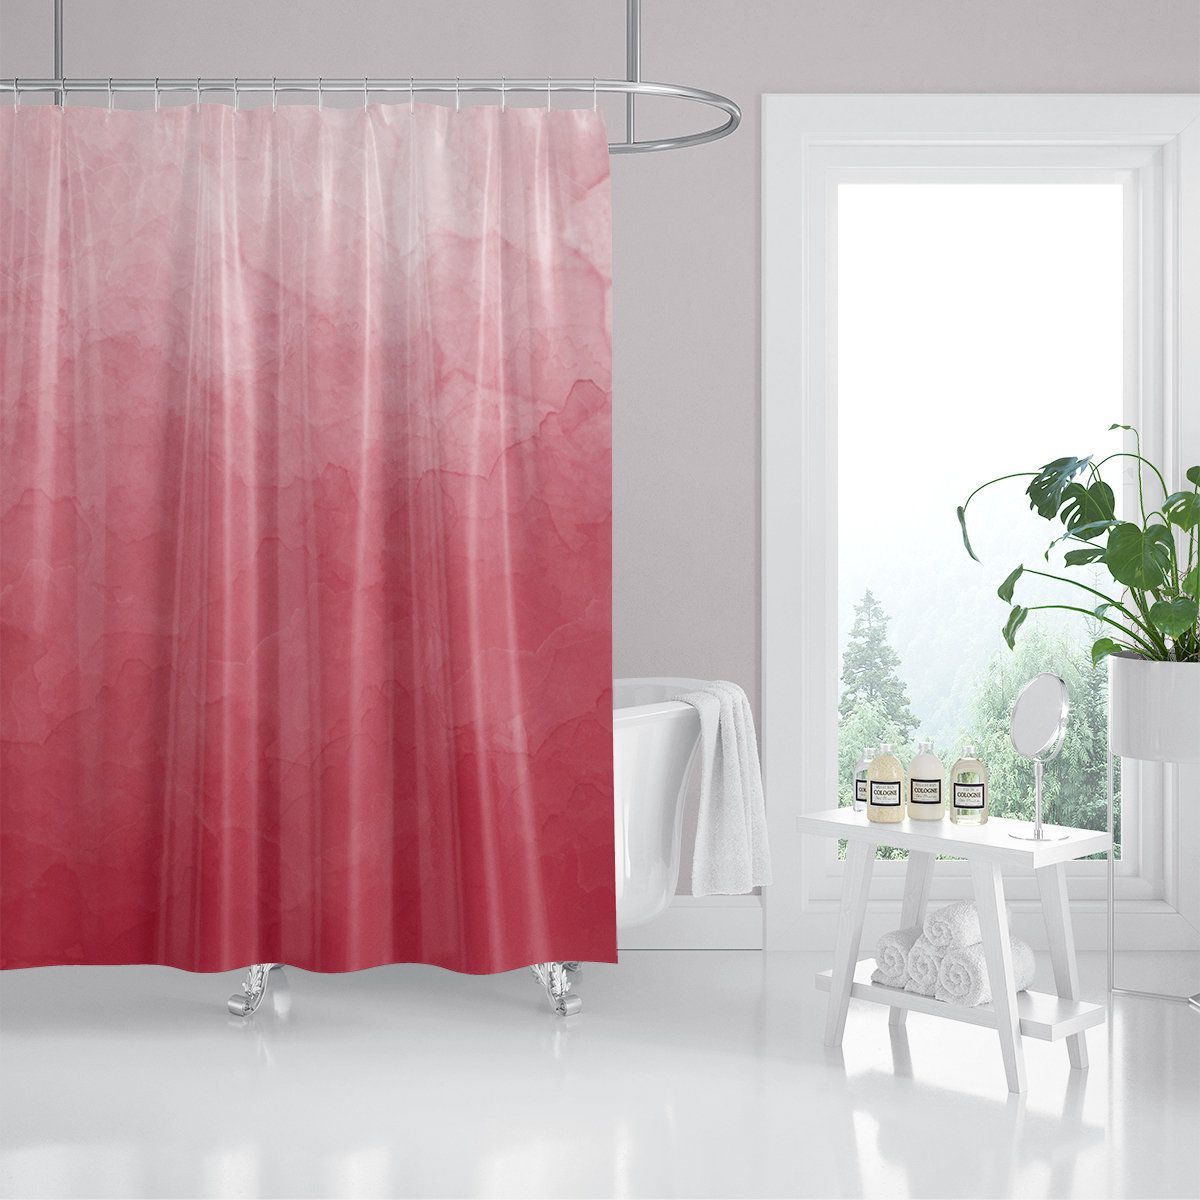 Rose Pink Ombre Fabric Shower Curtain Custom Shower Curtain Red